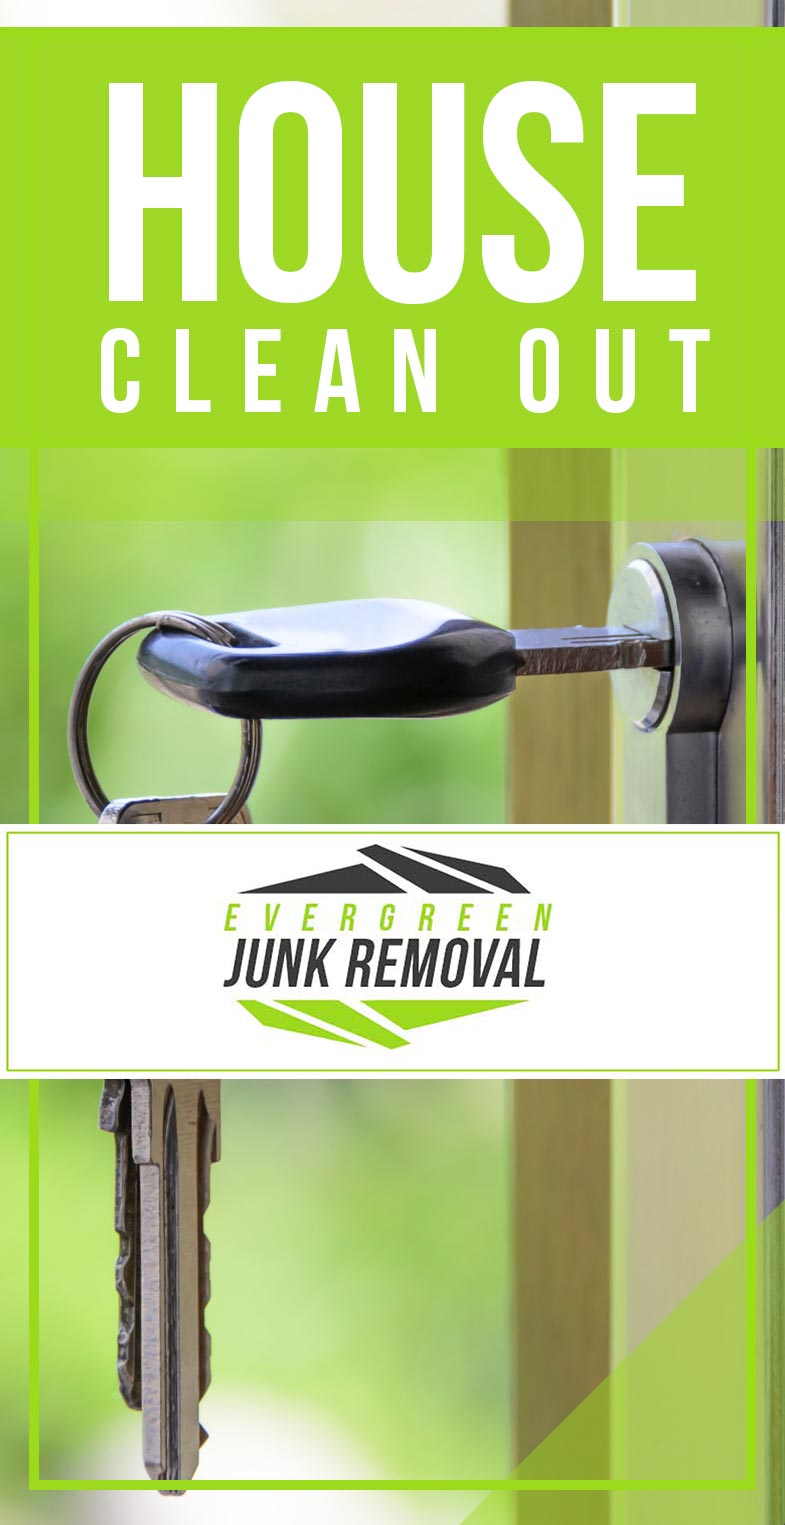 Junk Removal Lake Park House Clean Out